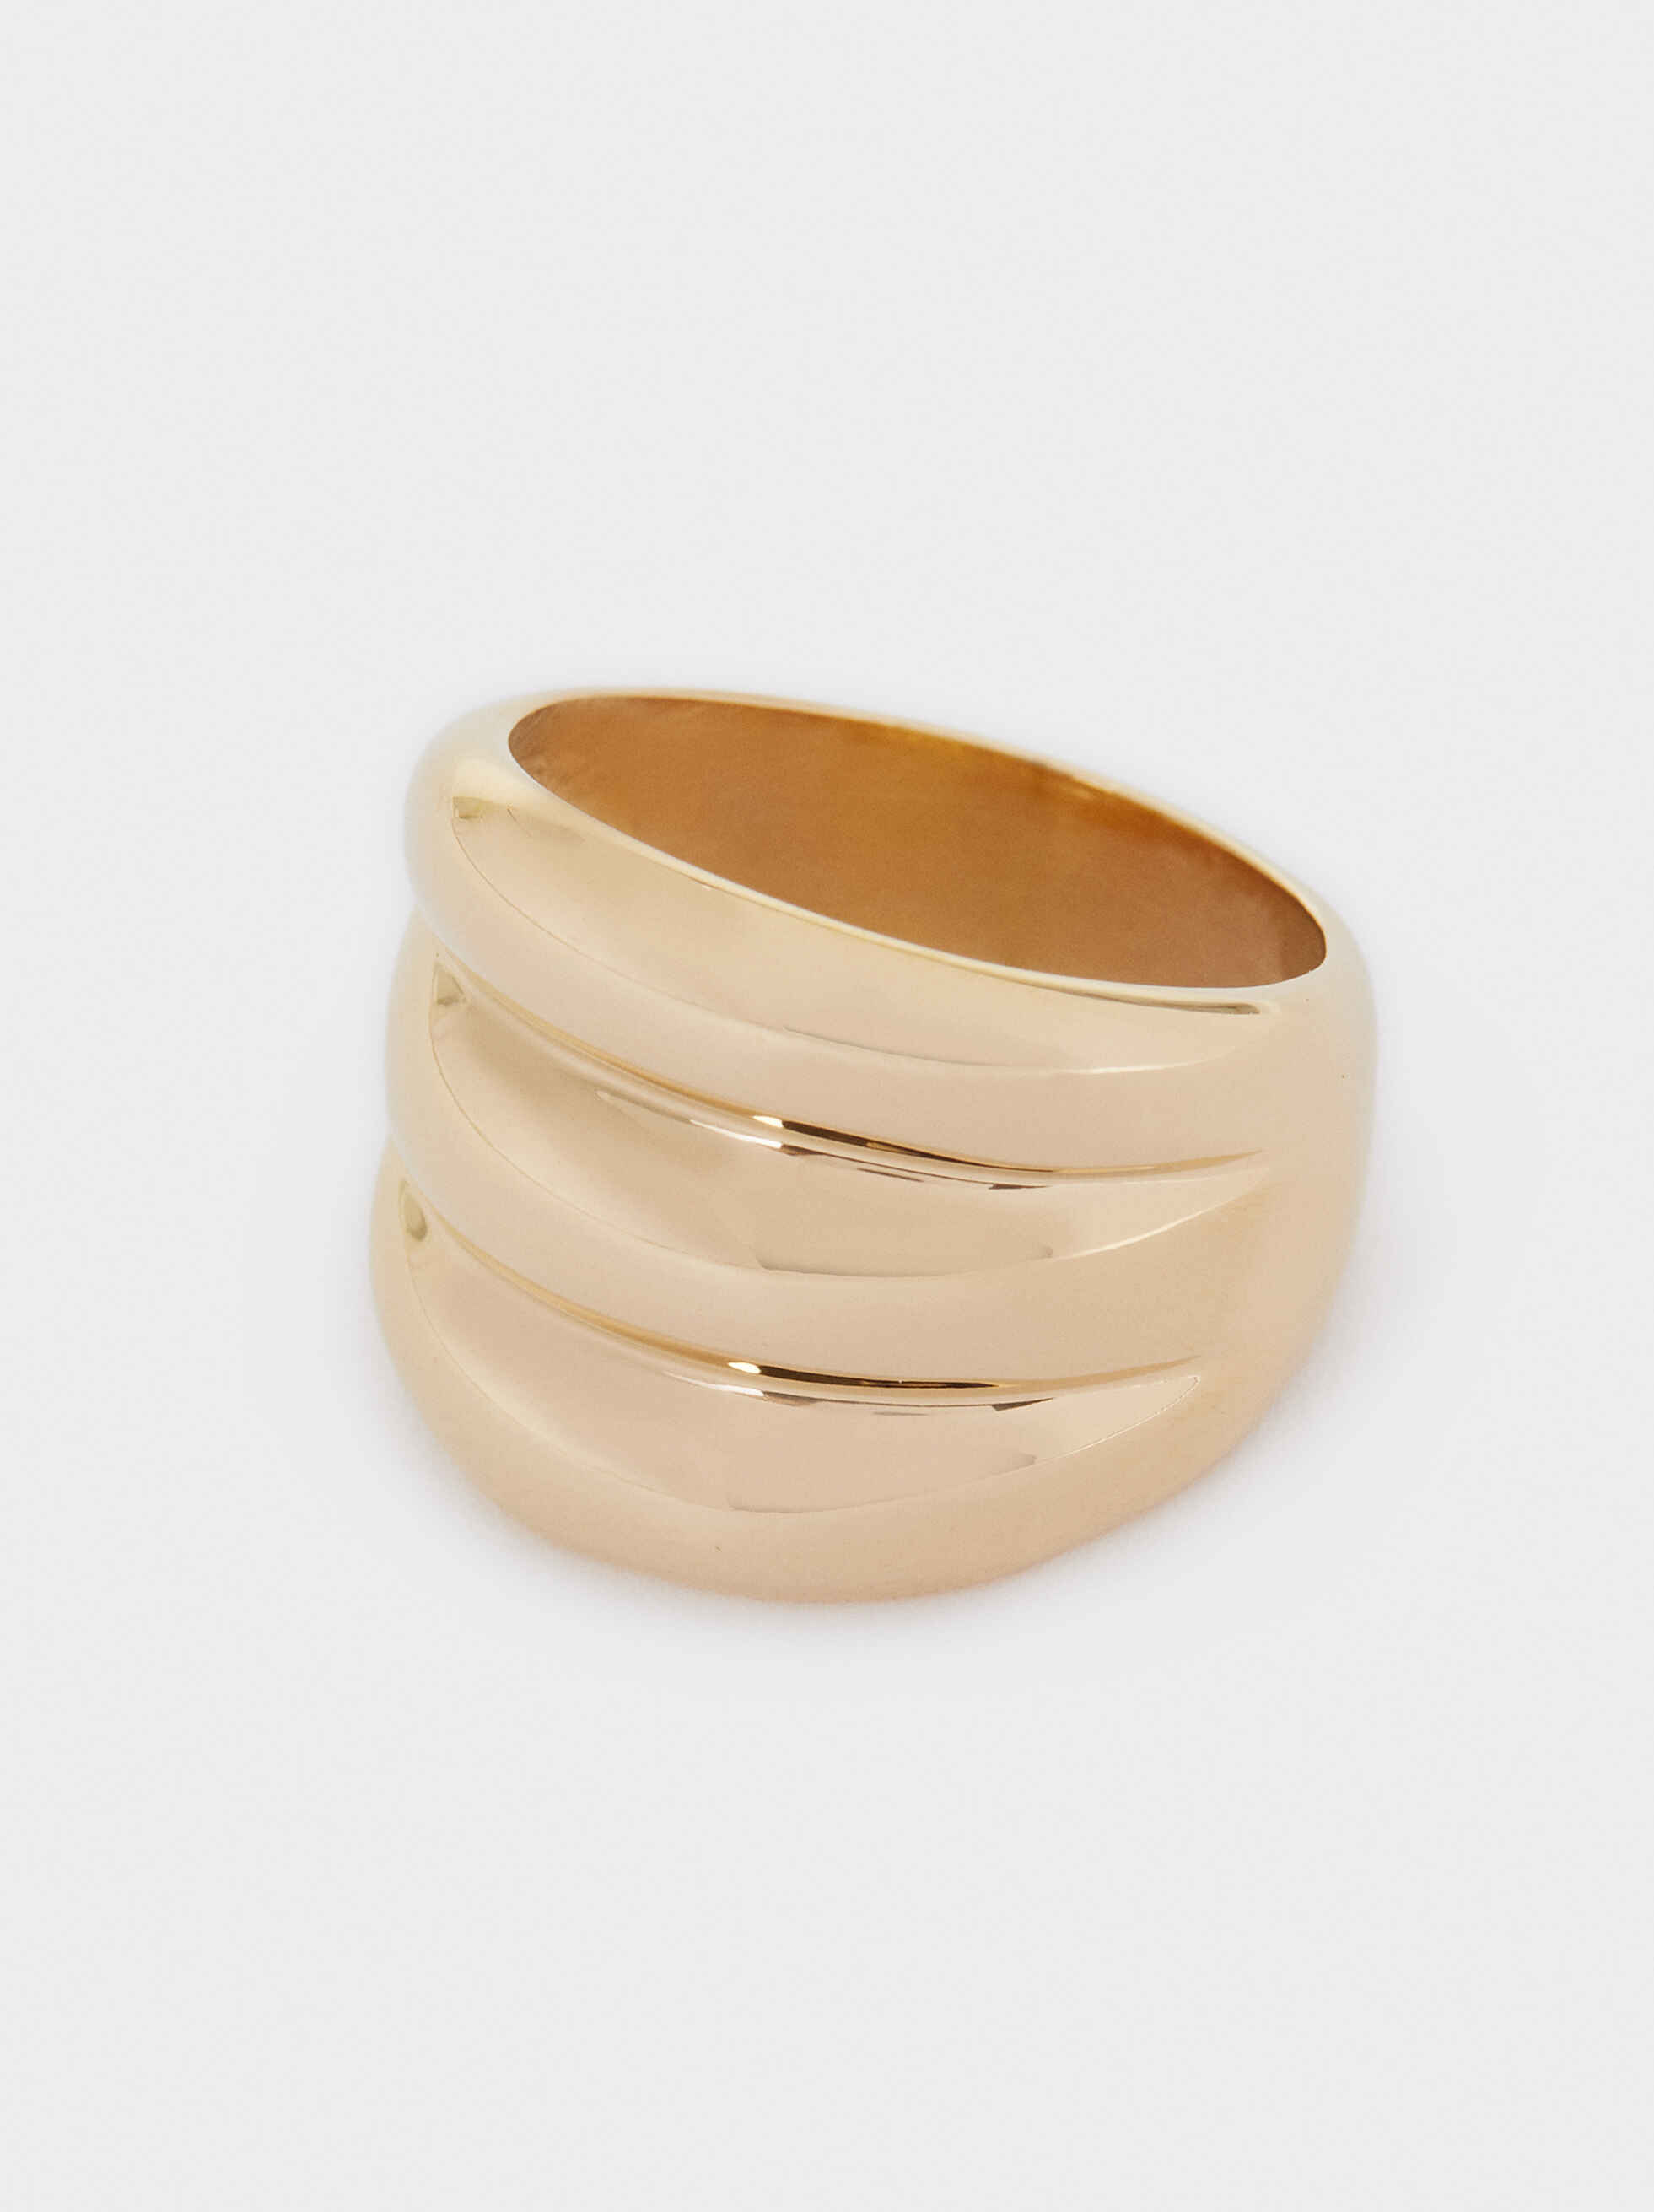 Three-Colour Stainless Steel Ring, Golden, hi-res